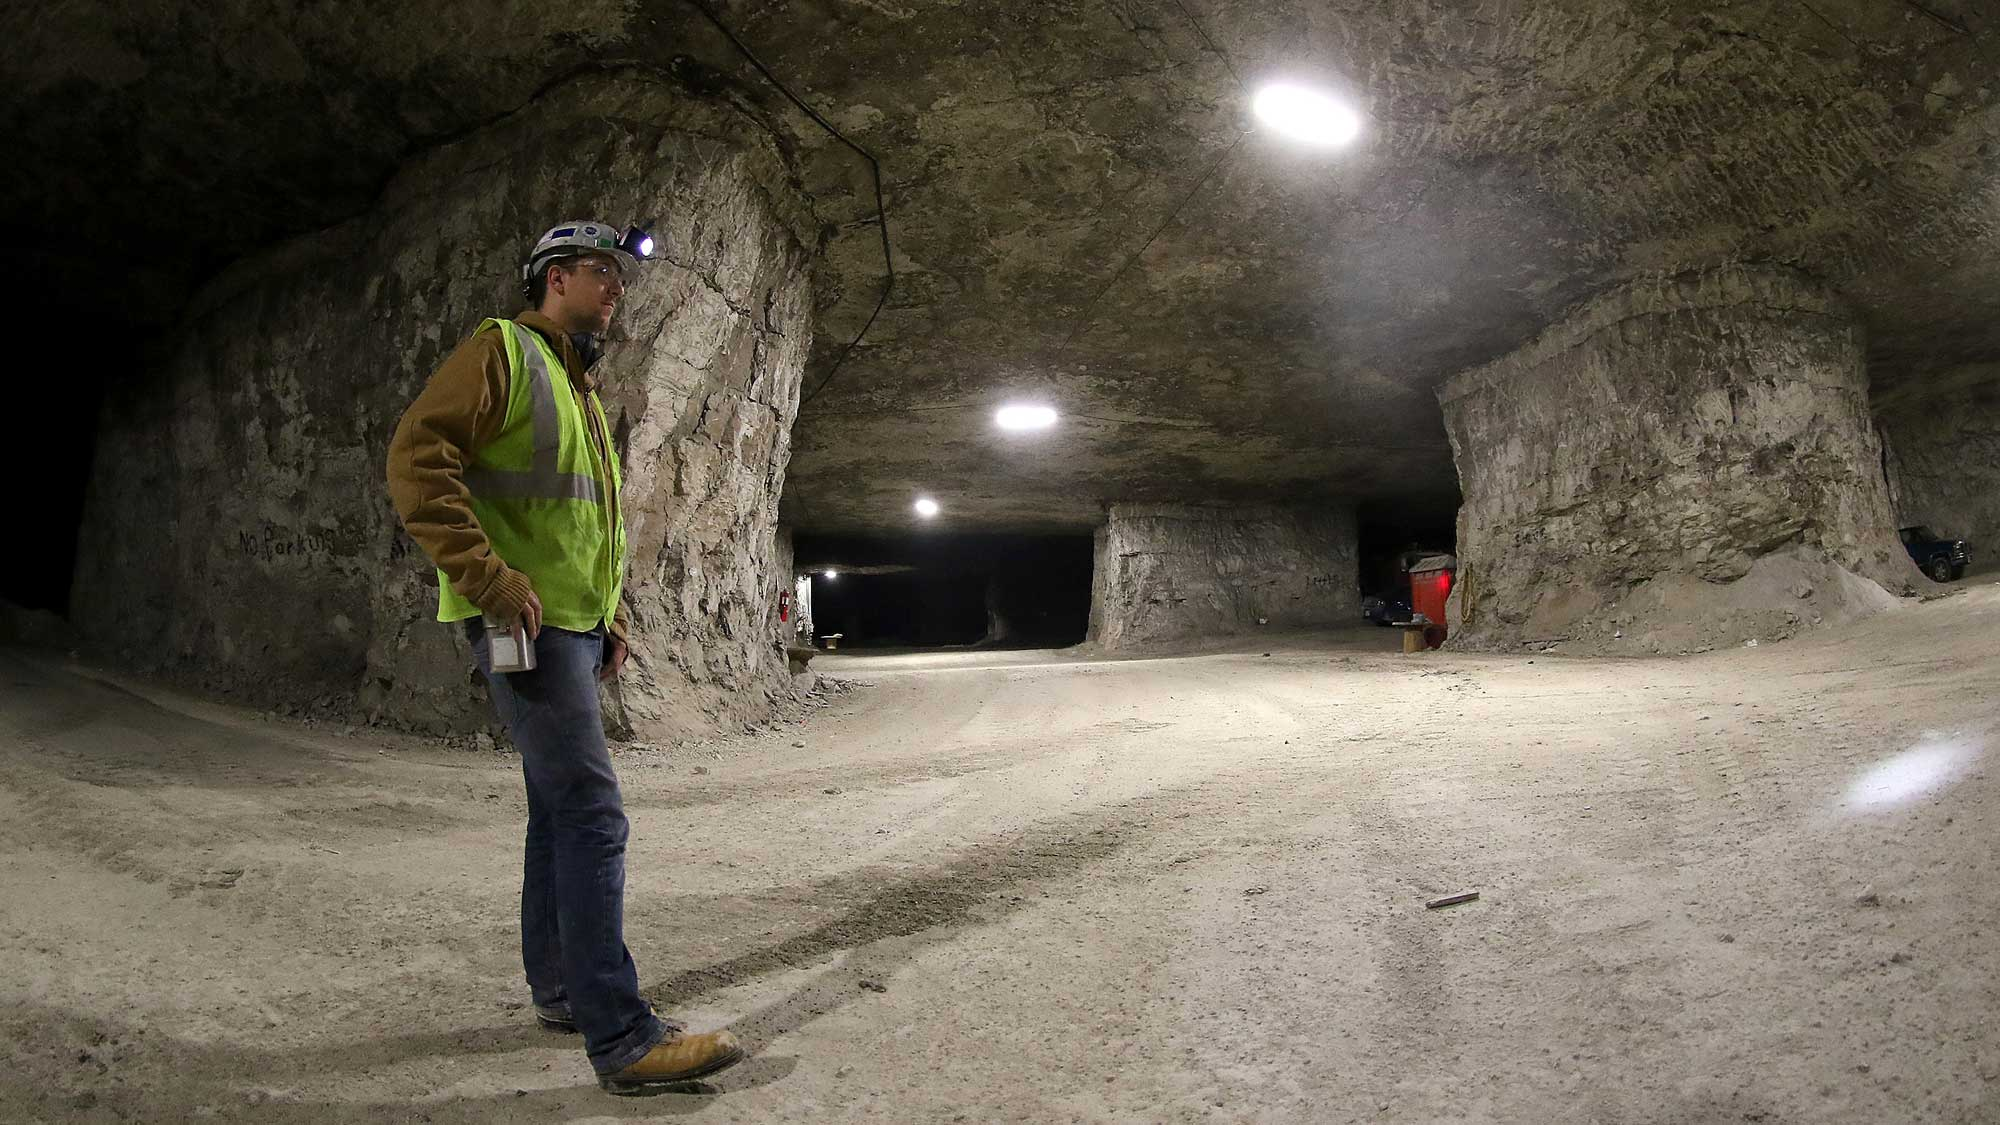 Foreman viewing the underground limestone mine within a large cavern